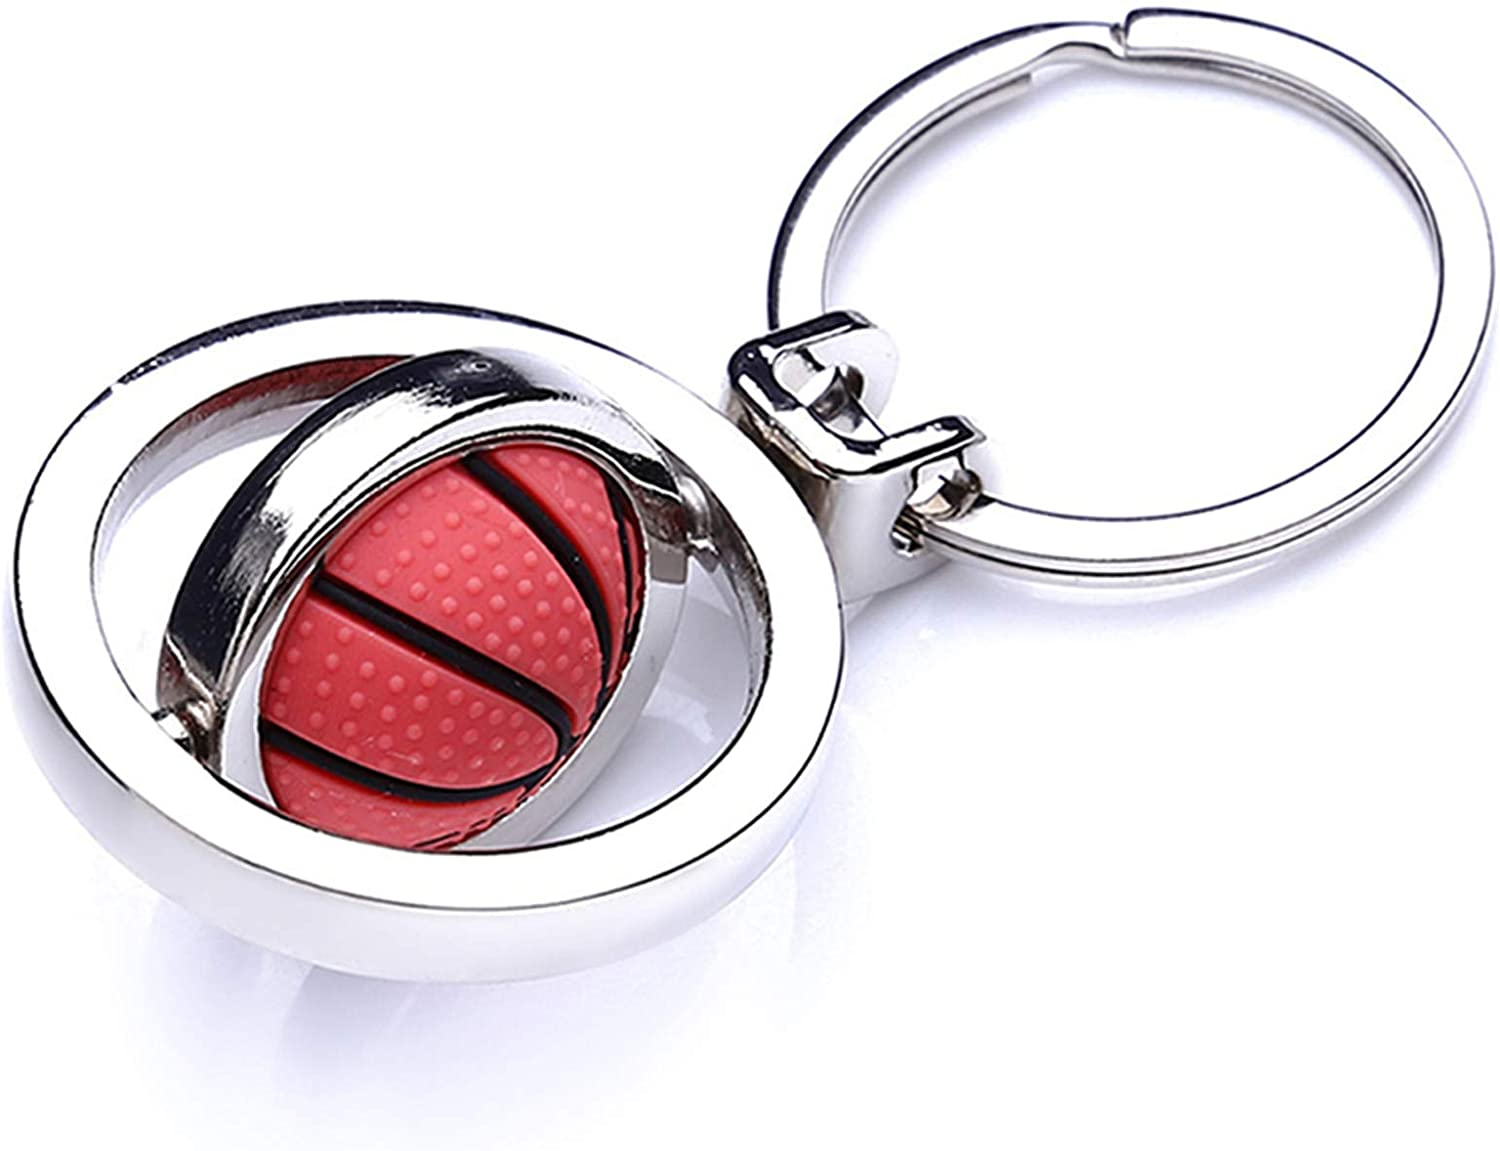 Cngstar Metal Spinning Basketball Keyring Inspirational Keychain Rings Gifts for Basketball Lover